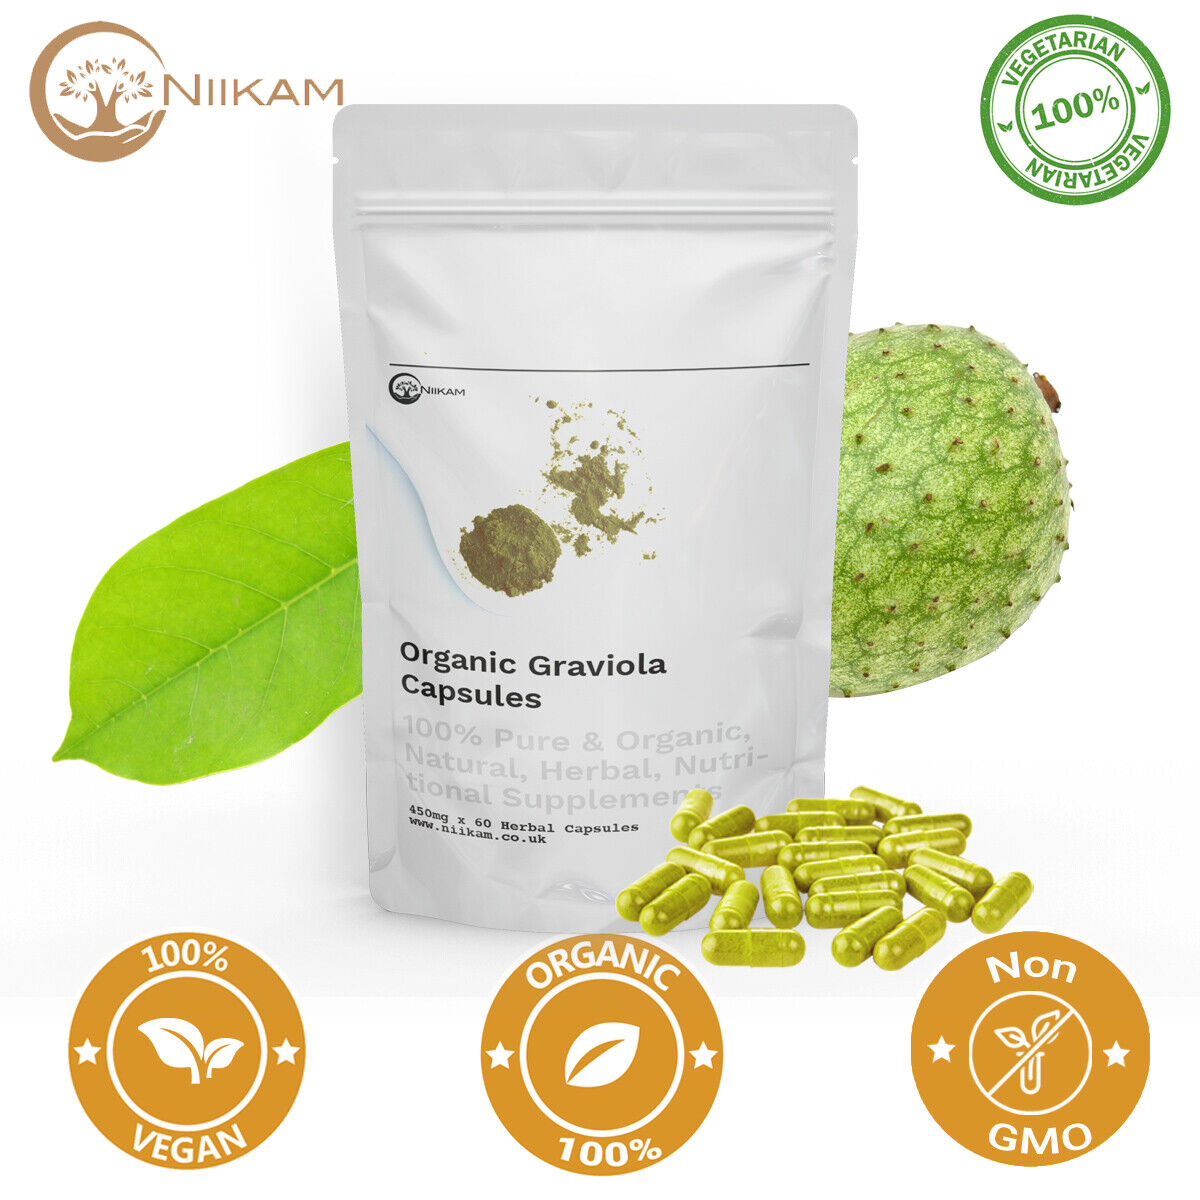 Organic Graviola (Soursop) | Guanabana Soursop Immune Antioxidant Supplement